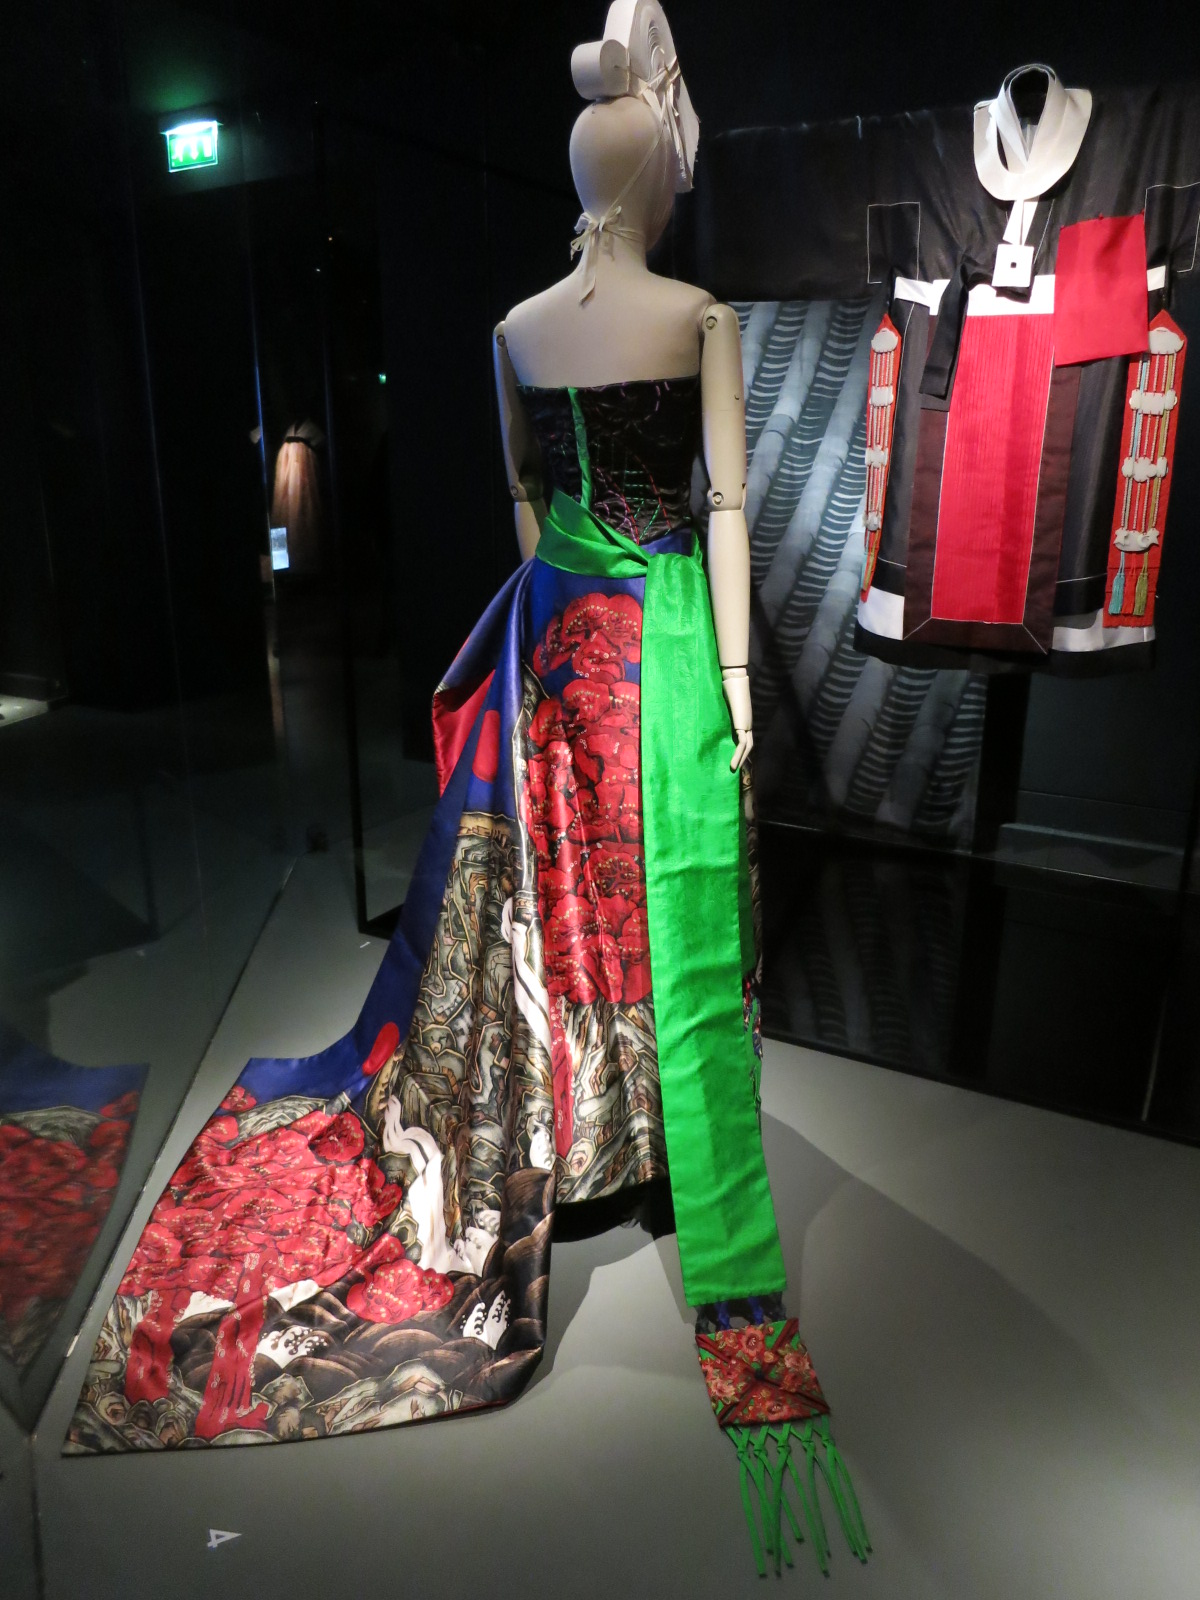 'Korea Now' exhibition at the Musee des Arts Decoratifs. Closes on the 3rd January 2016. Contemporary Ceremonial Korean dress